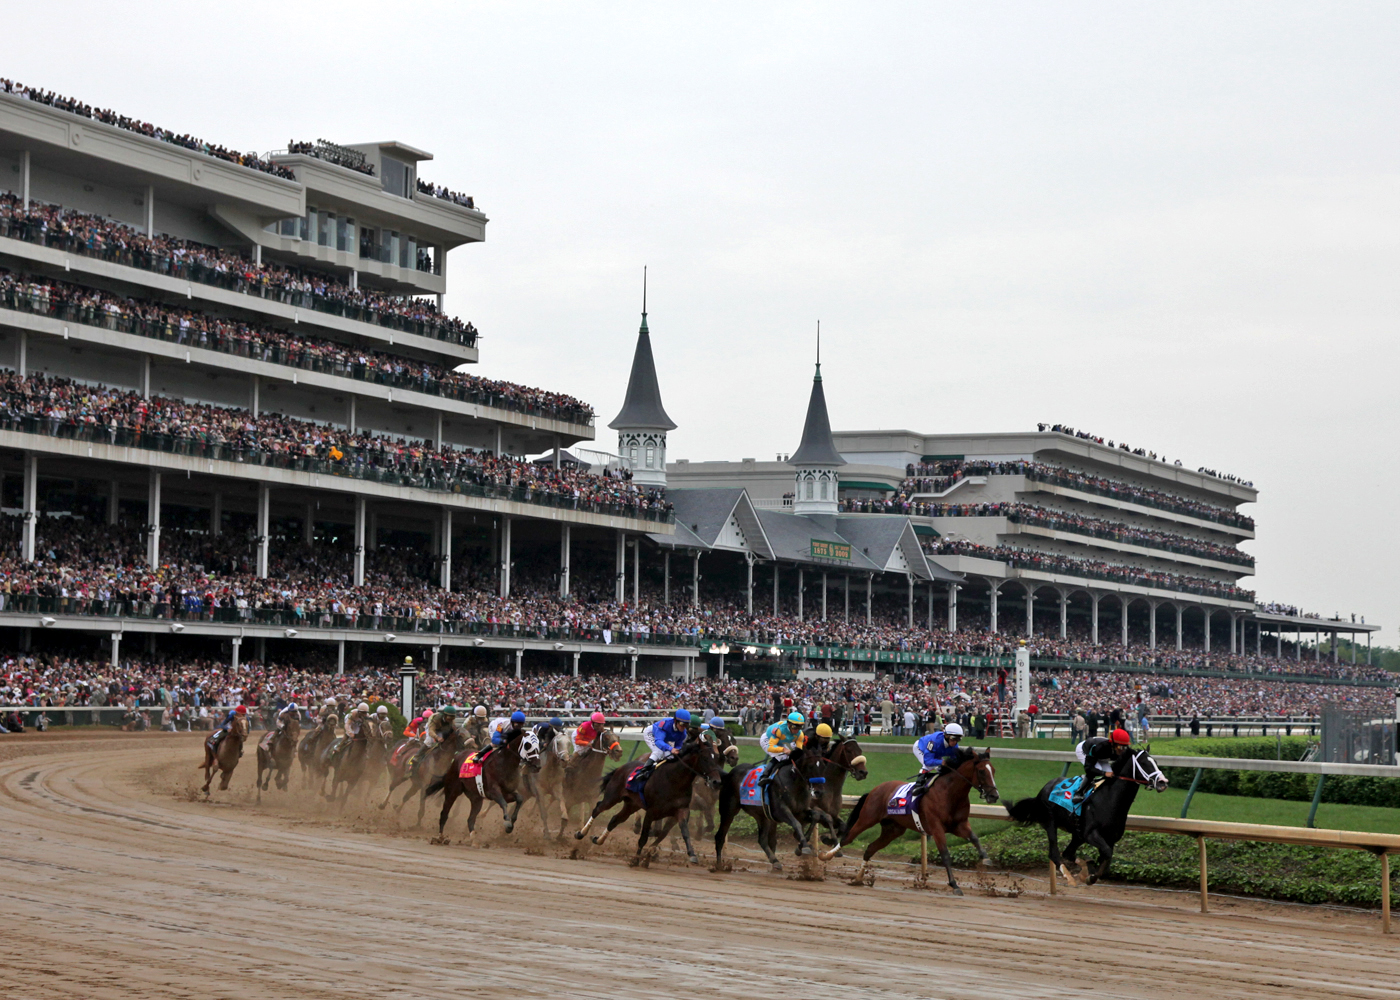 Churchill Downs results up